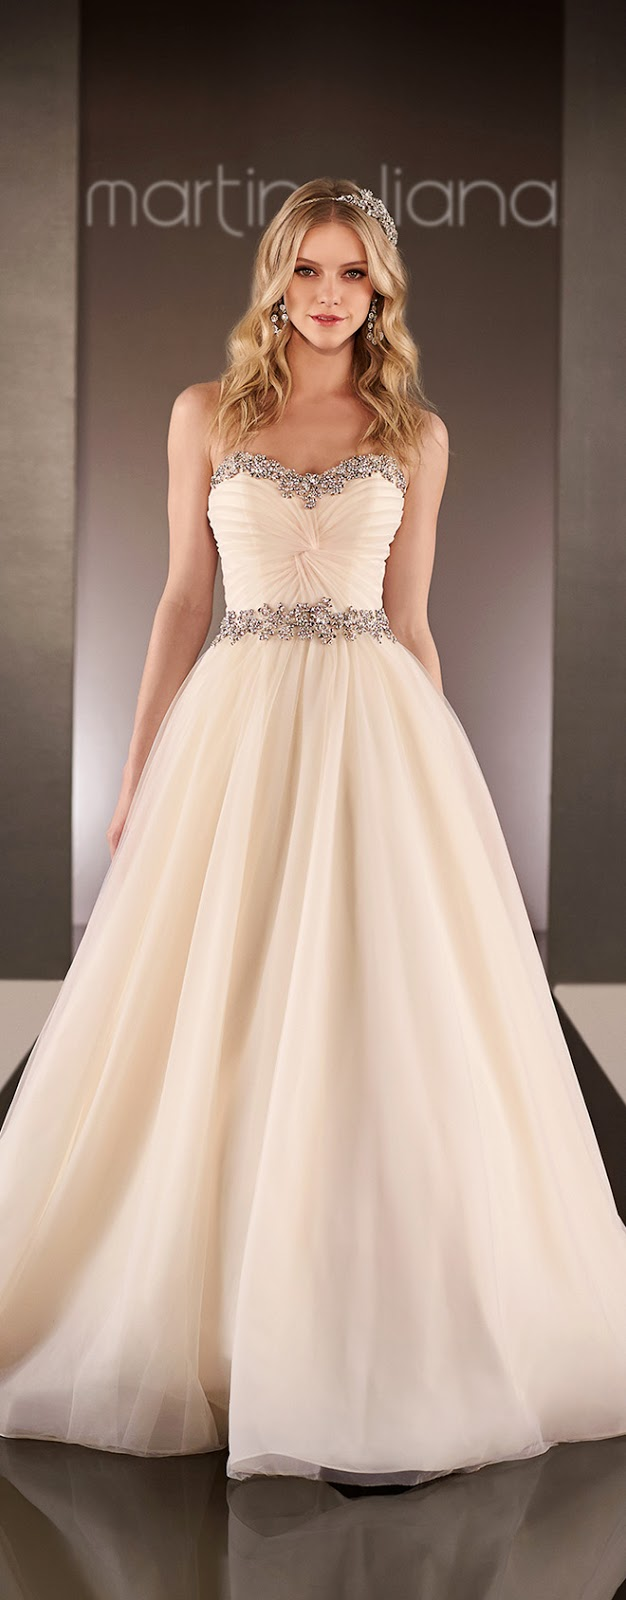 Best Wedding Dresses of 2014 - Martina Liana